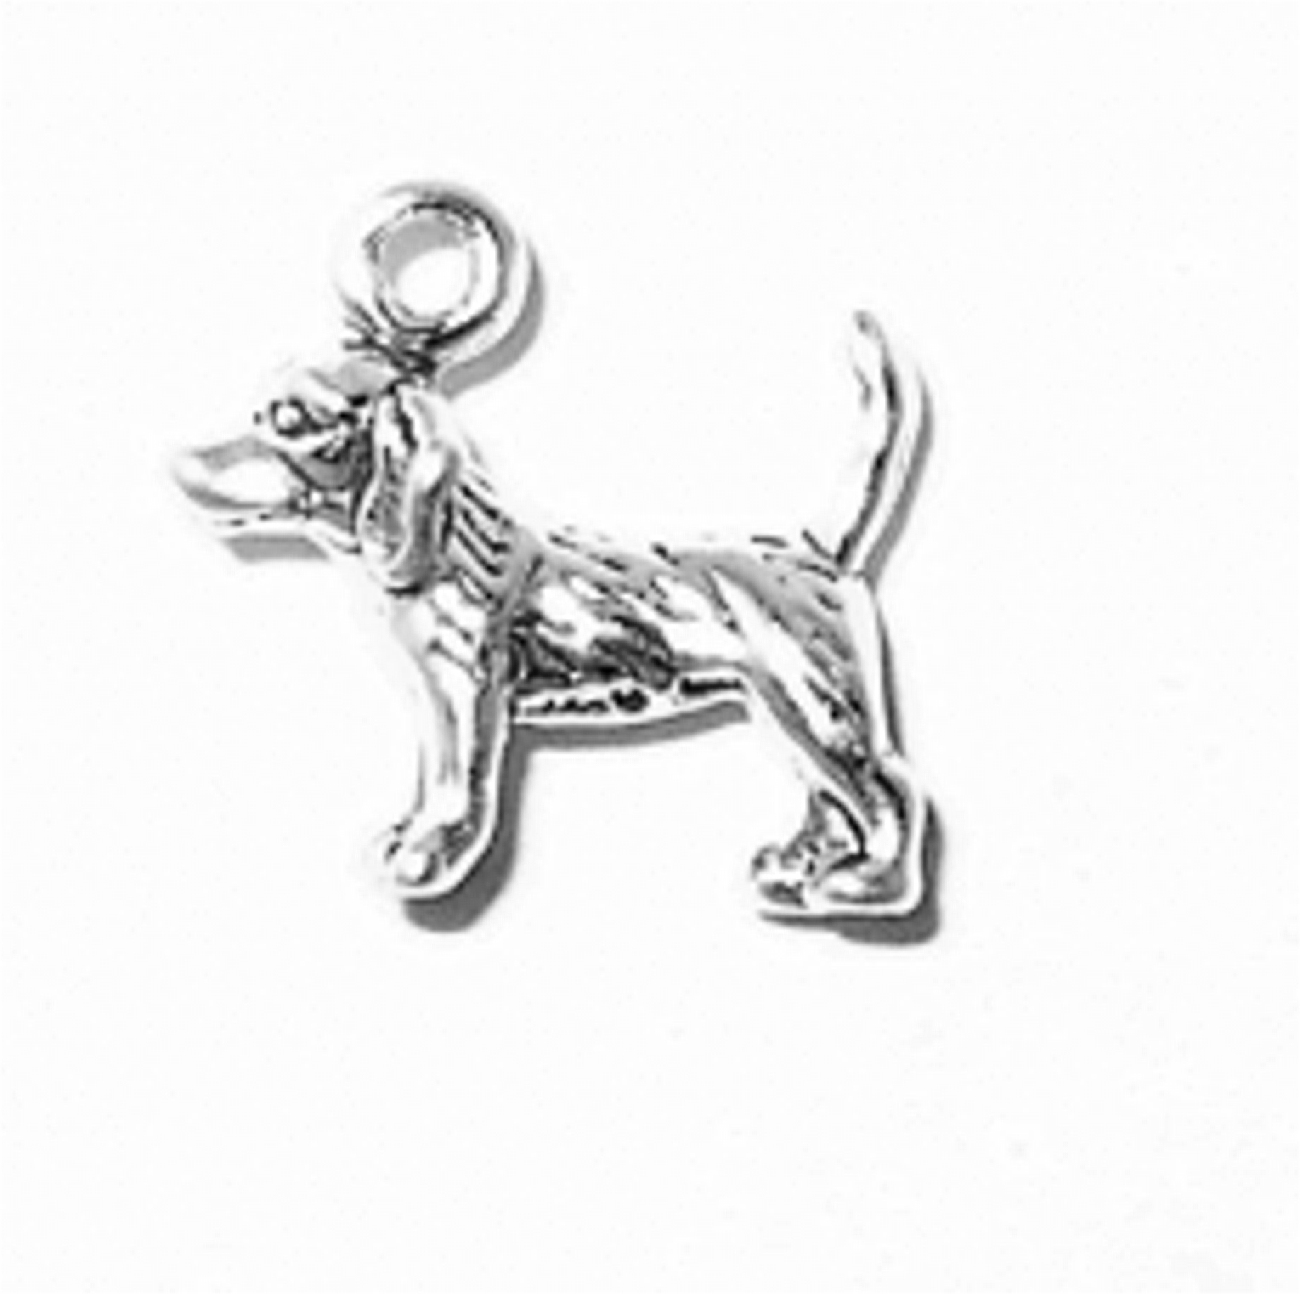 3D Small Beagle With Tail Up Dog Breed Charm